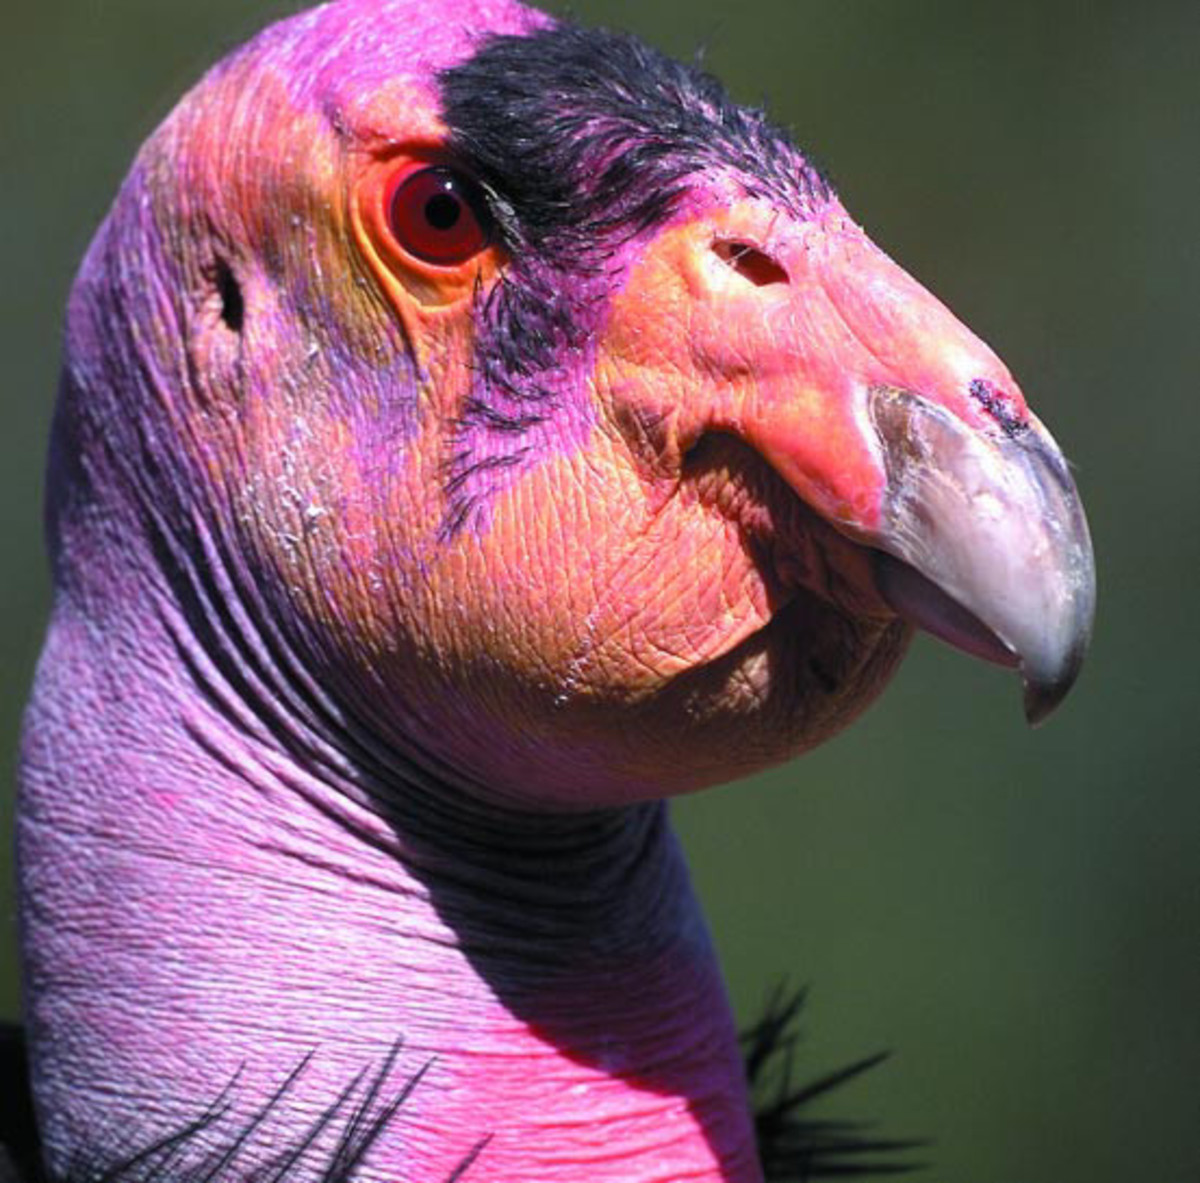 This picture of a California Condor show its distinctive bald head.